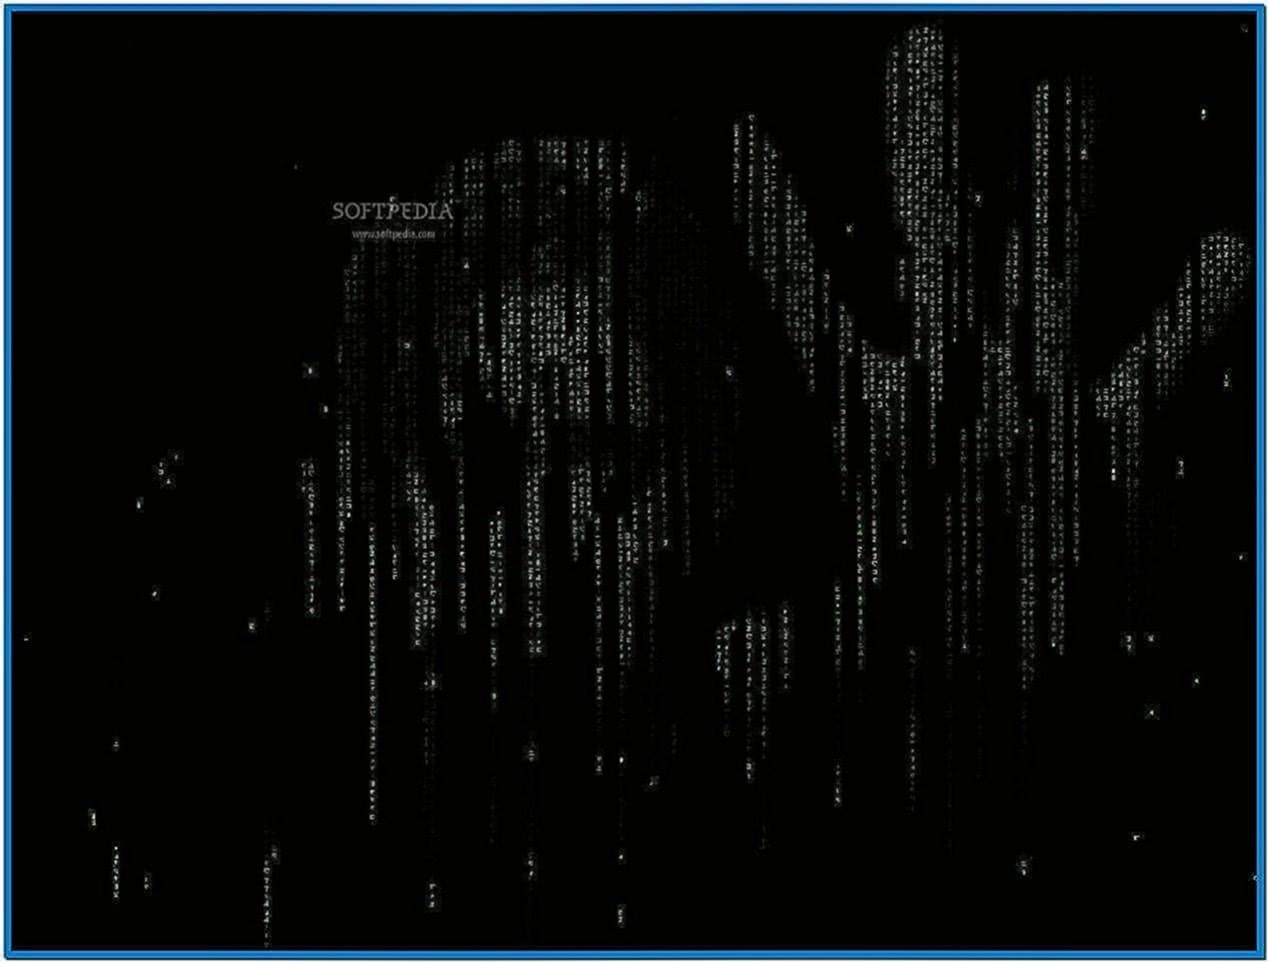 Animated matrix screensaver vista